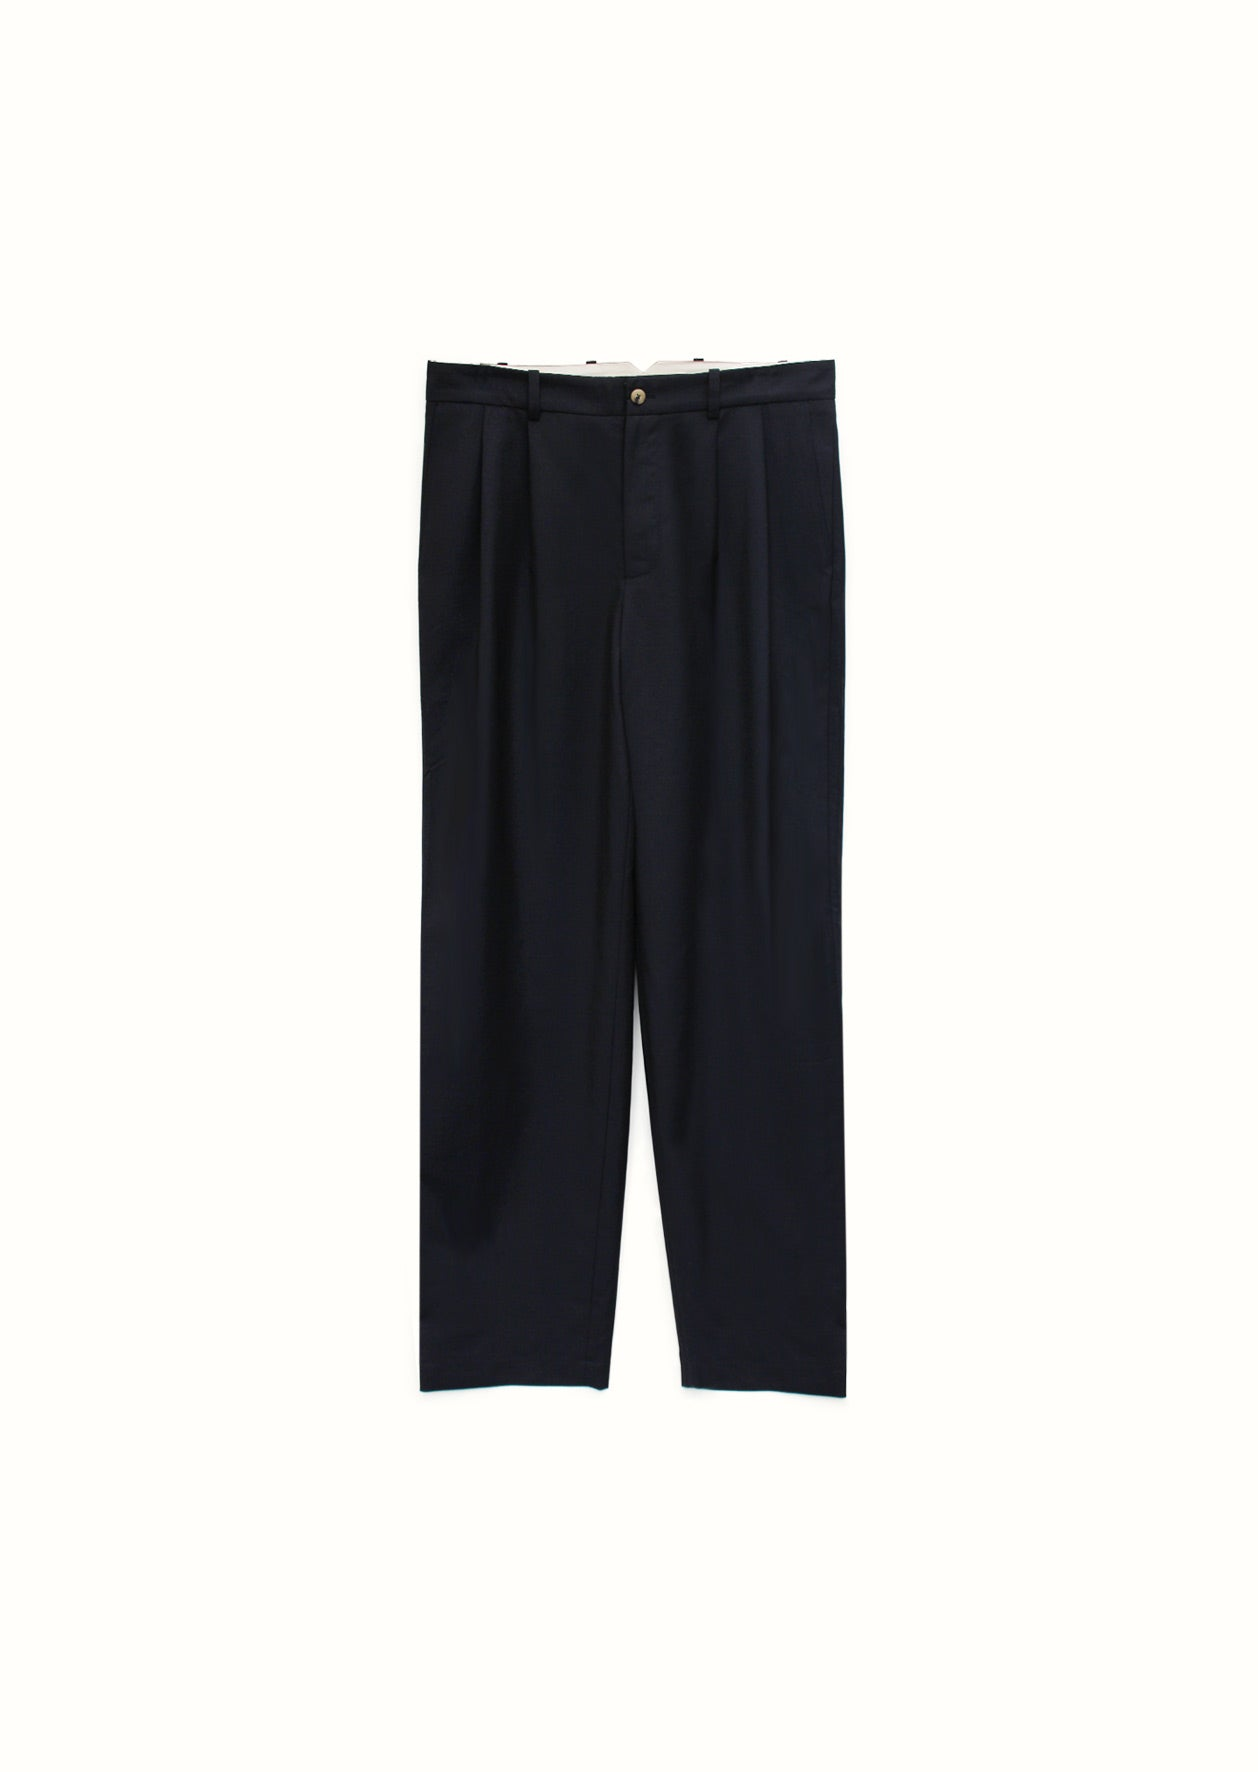 Two pleat large trousers - Tropical wool - Navy - De Bonne Facture